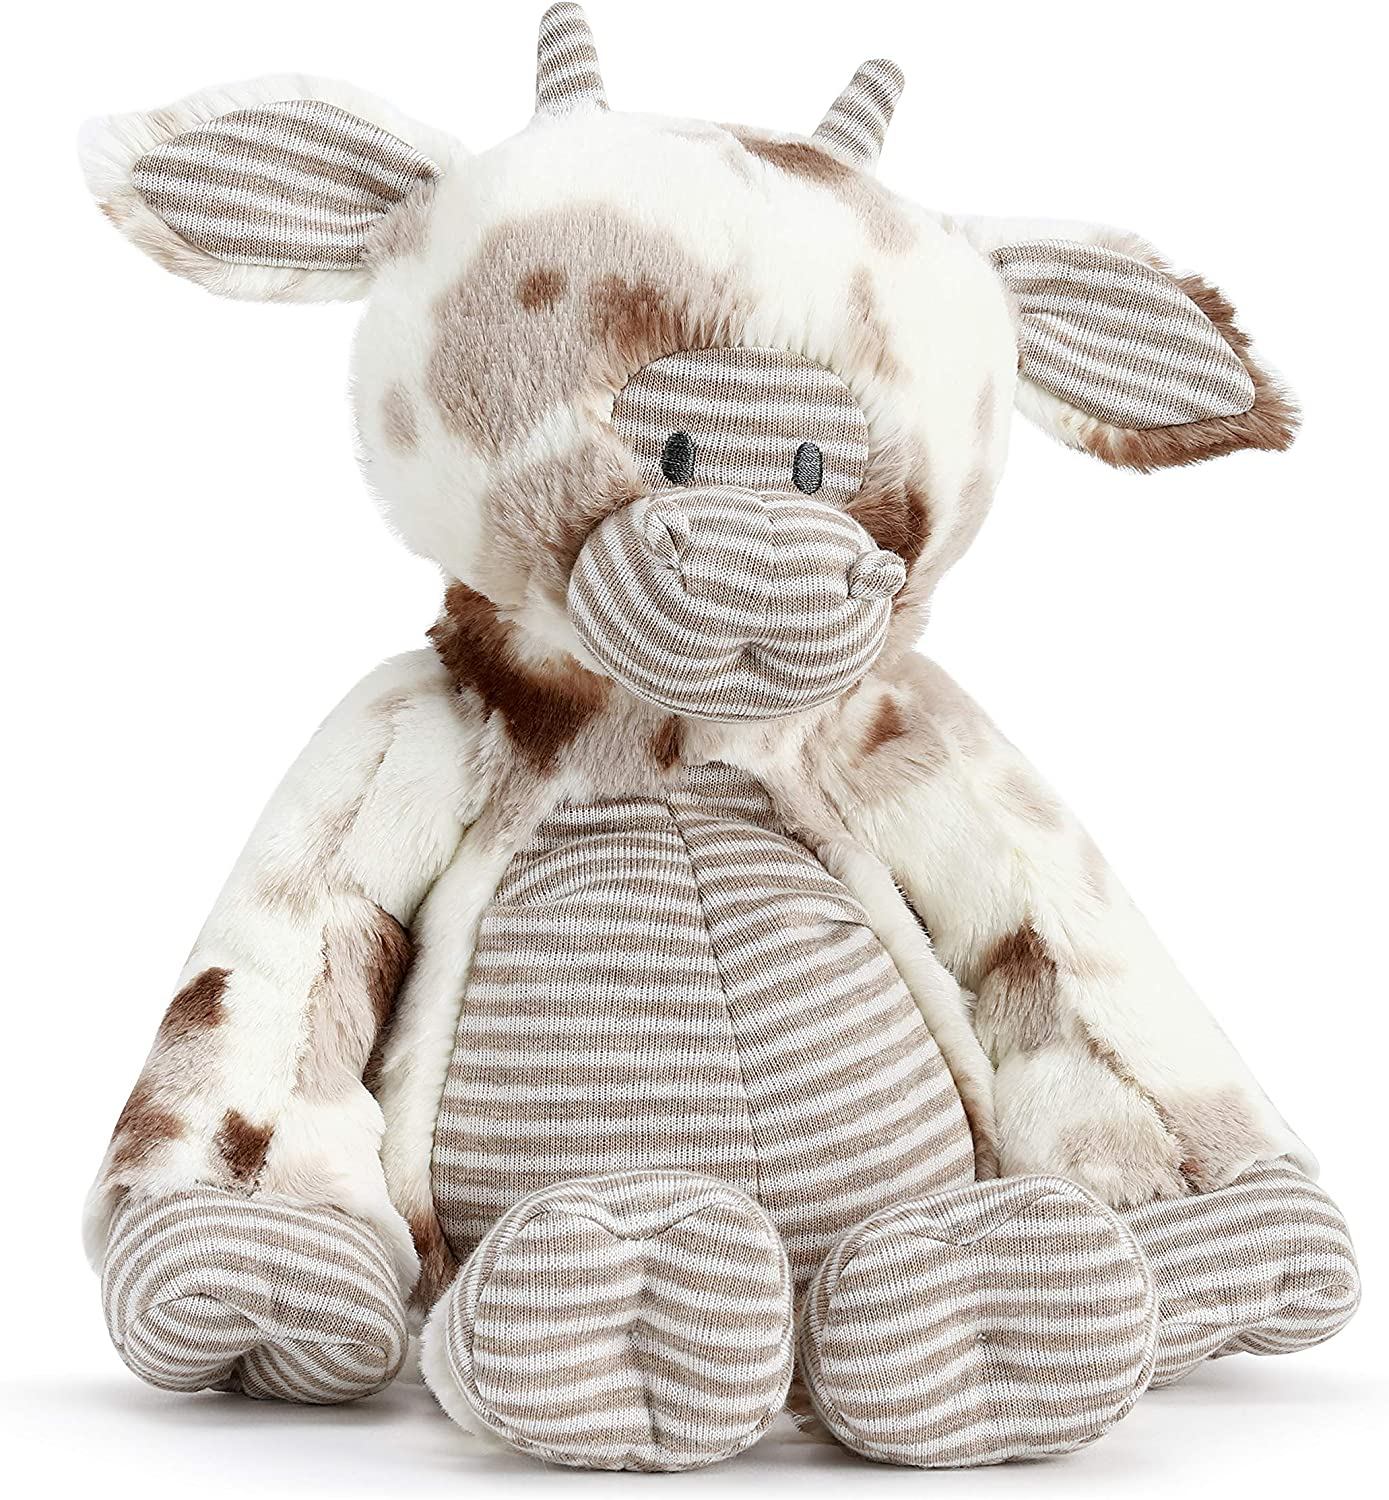 DEMDACO Brown Spotted Barnyard Cow 12 inch Children's Plush Stuffed Animal Toy